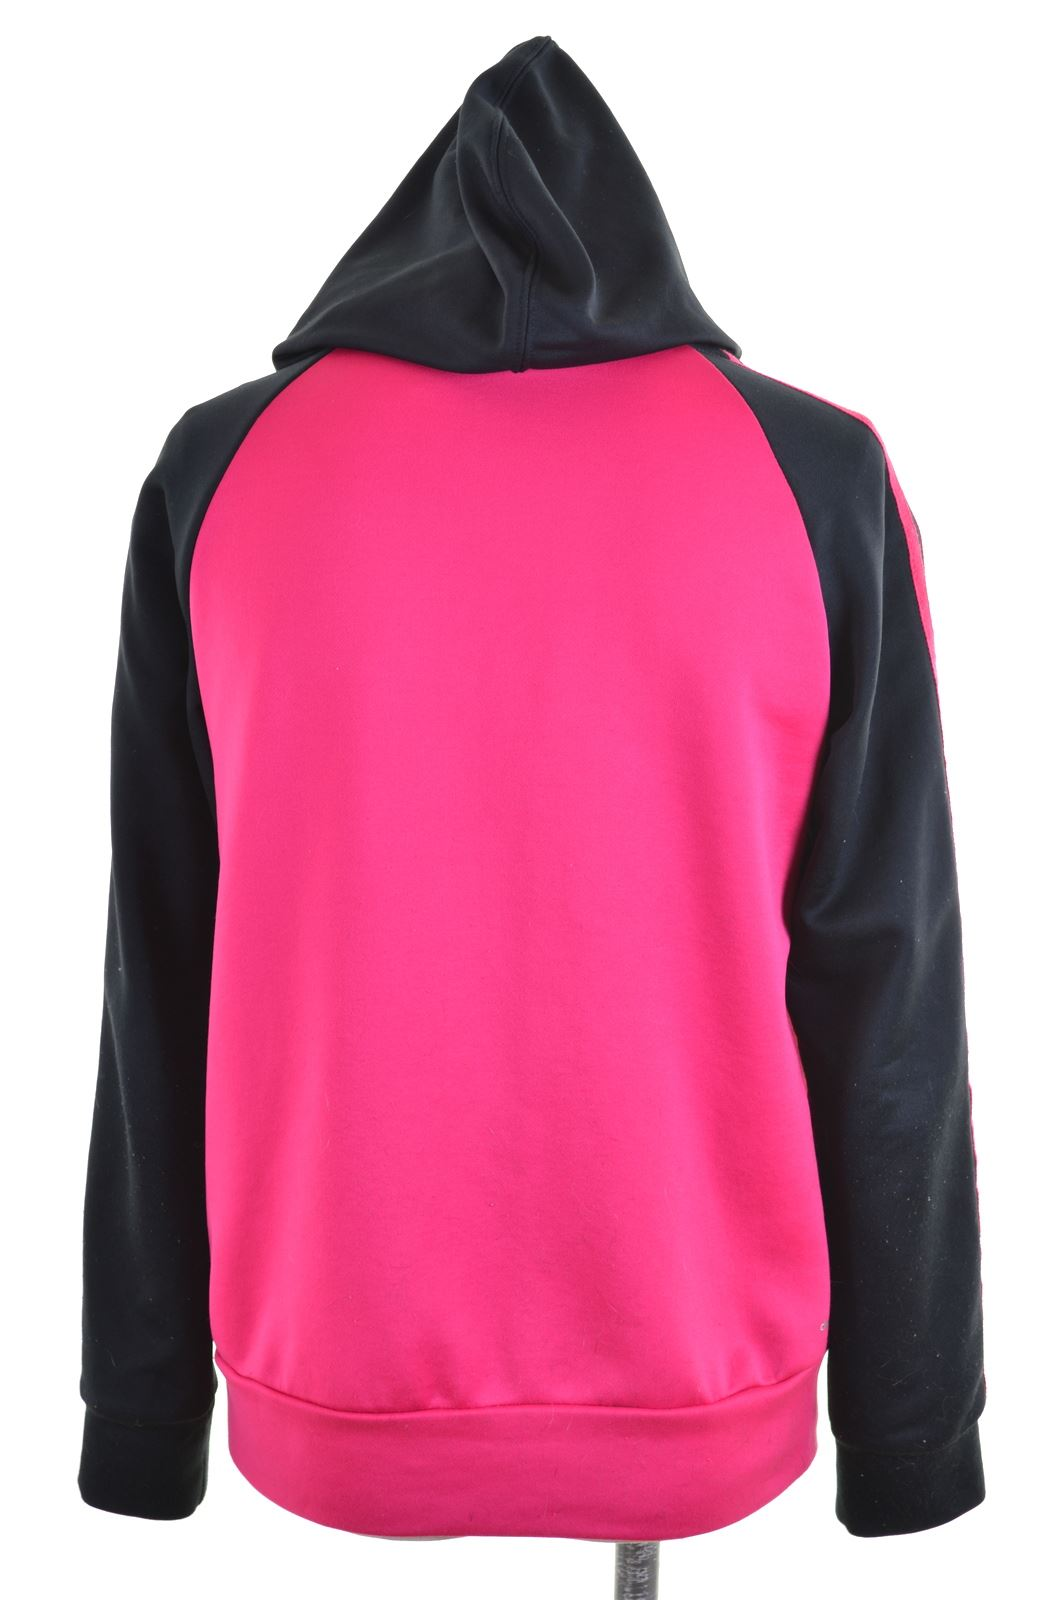 a5320f722f61 ADIDAS Womens Hoodie Sweater UK 10 Small Pink Polyester Vintage FN02 ...